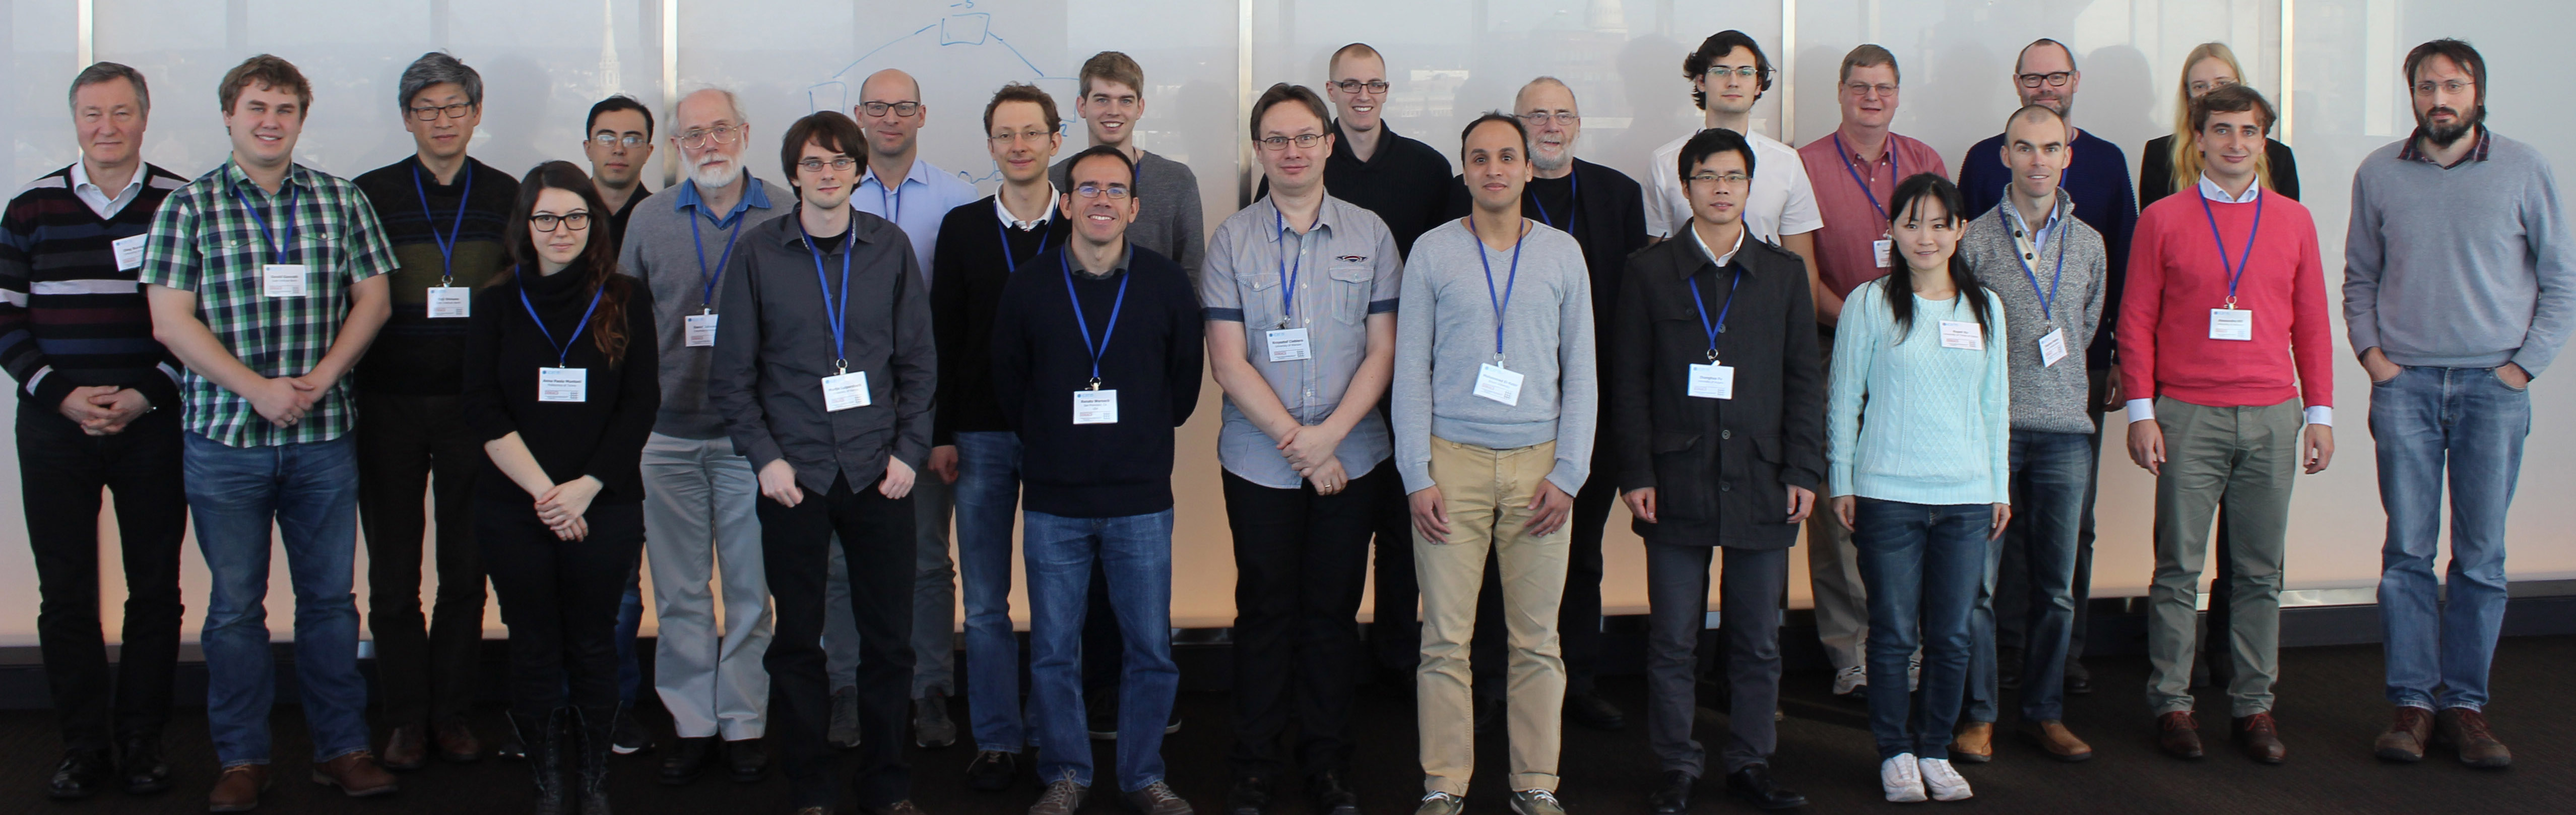 Attendees of the 11th DIMACS Implementation Challenge in